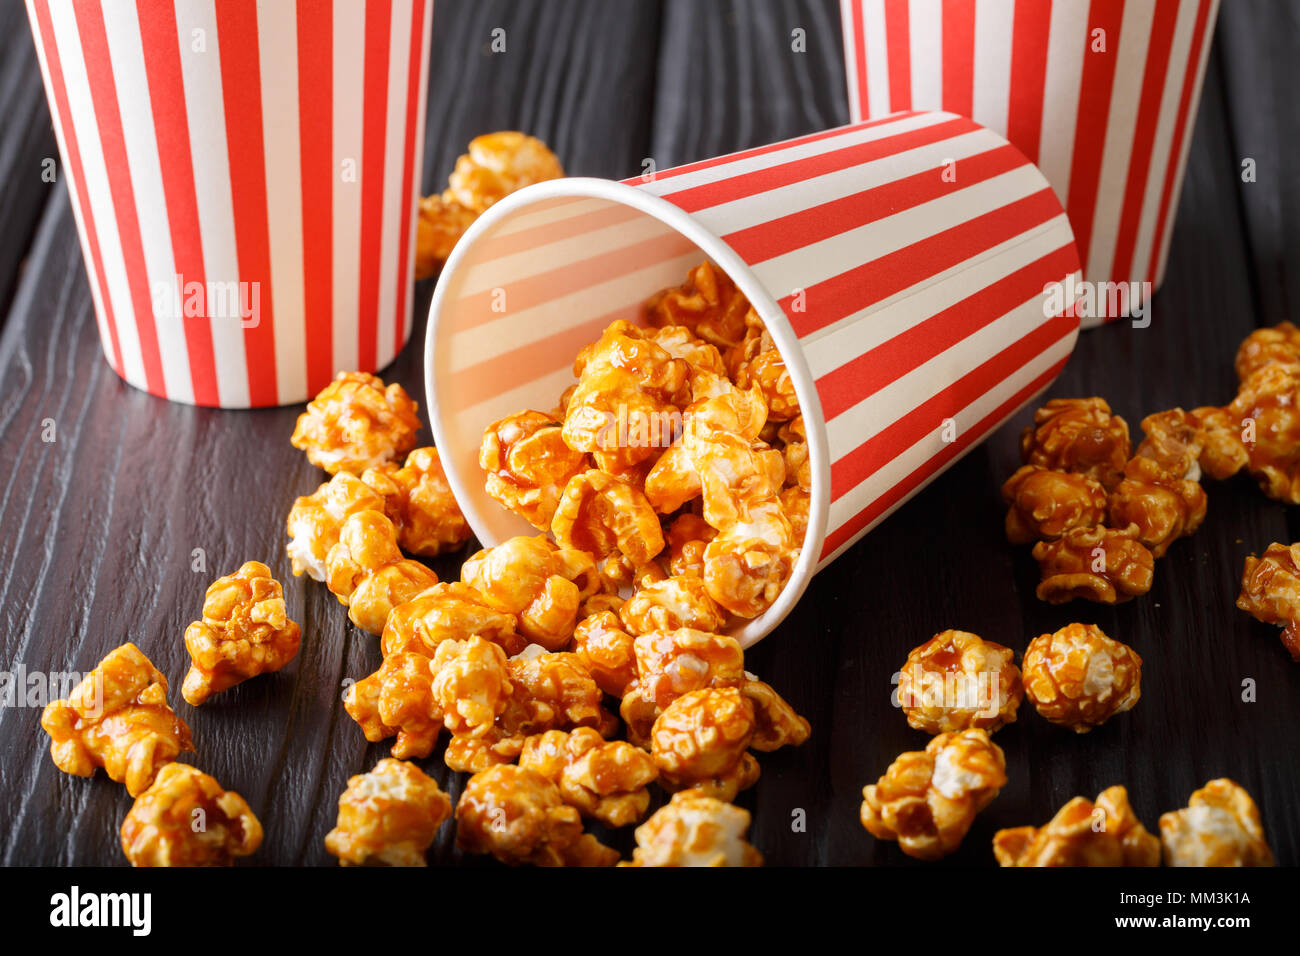 Delicious caramel popcorn in paper cups close-up on the table. horizontal - Stock Image